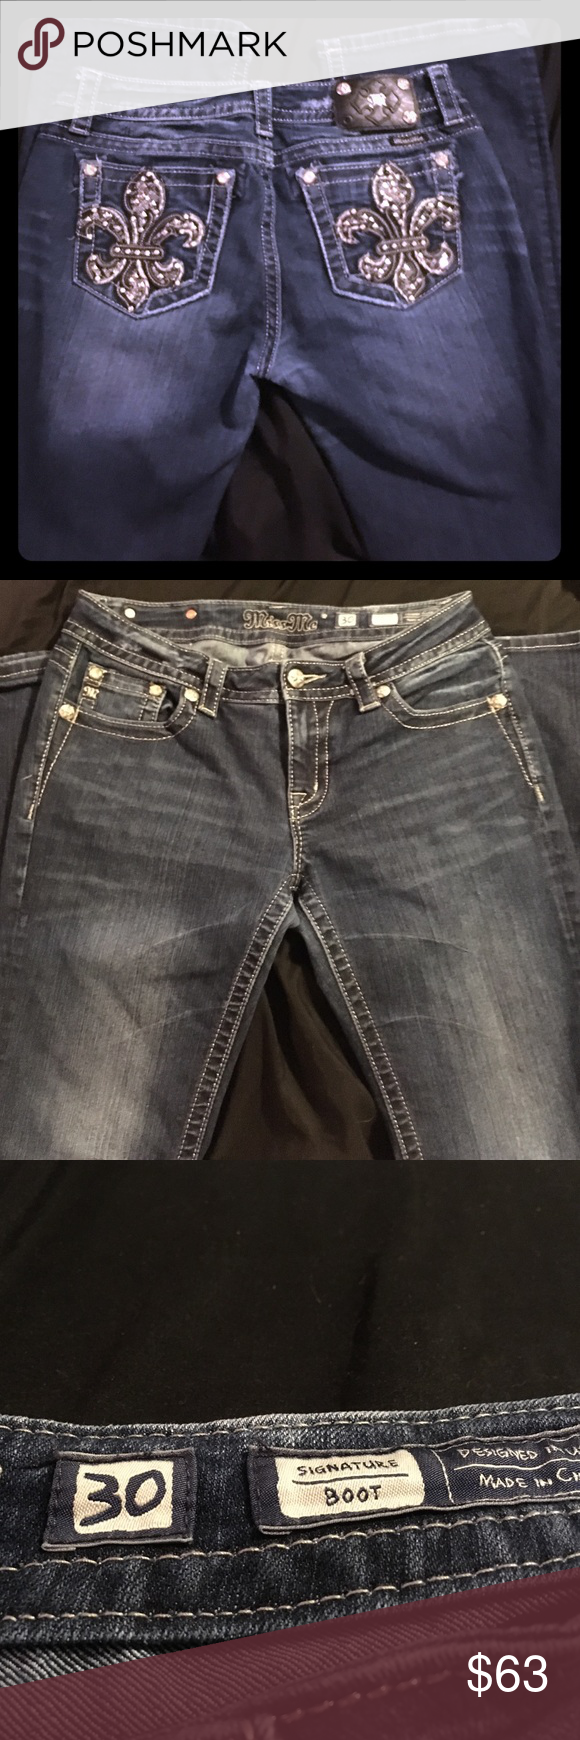 Miss Me signature blue jeans size 30 like worn 3x Gently worn miss me jeans signature boot cut size 30. They come from a non-smoking home. Still in great condition! Miss Me Jeans Boot Cut